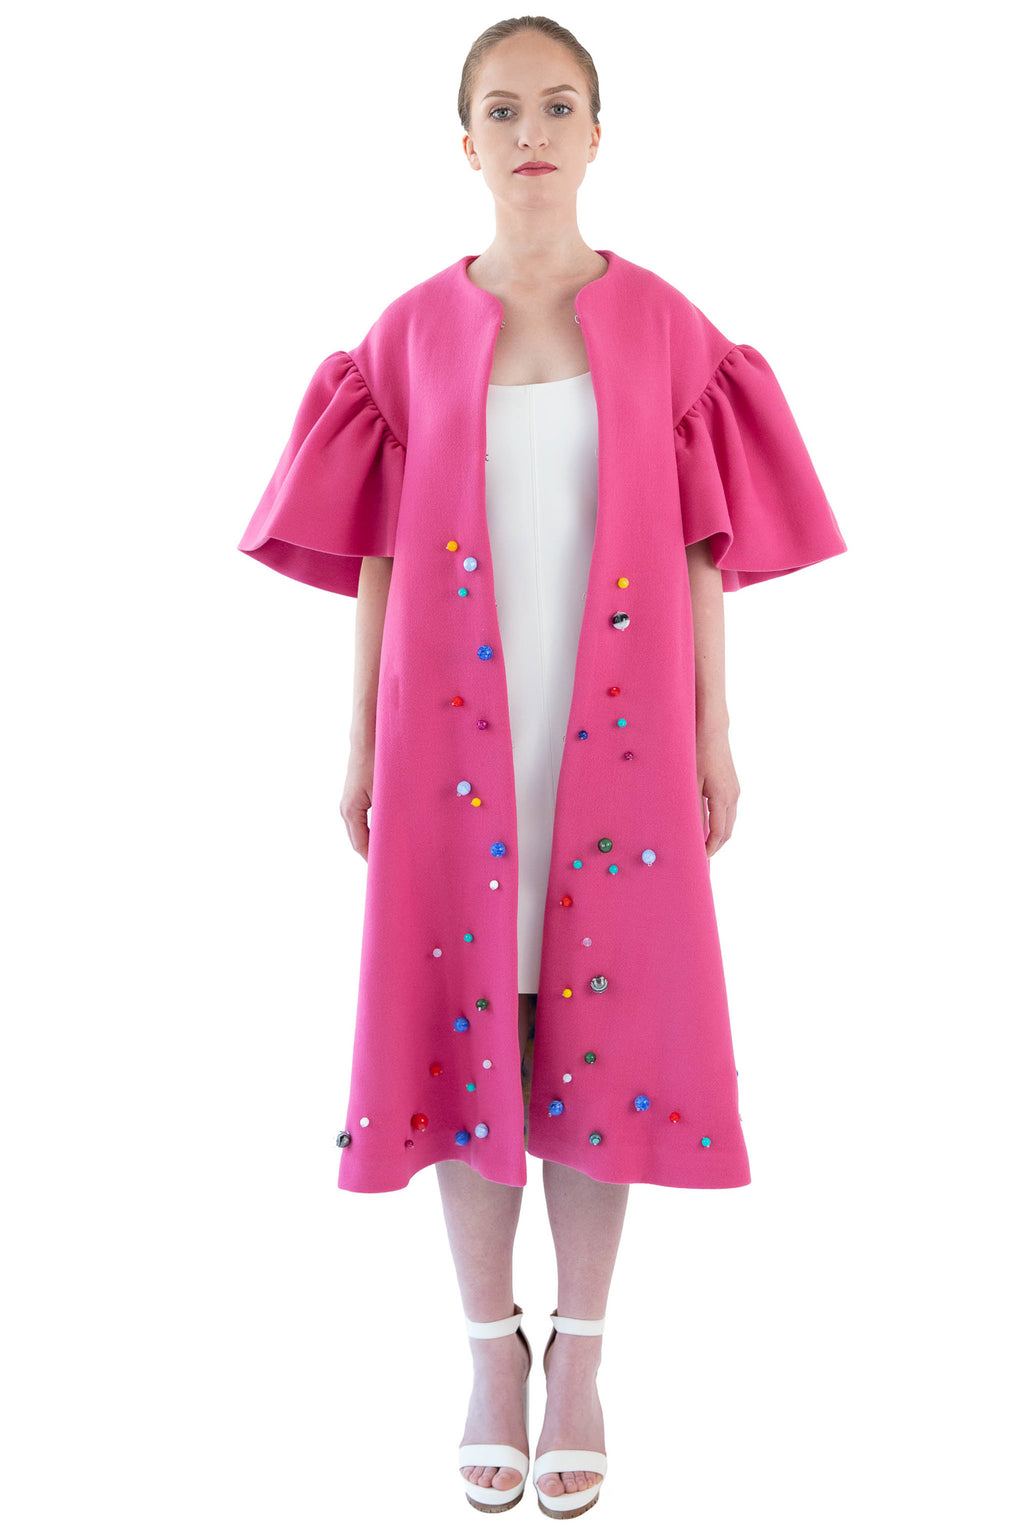 Front of women's pink hand beaded opera coat